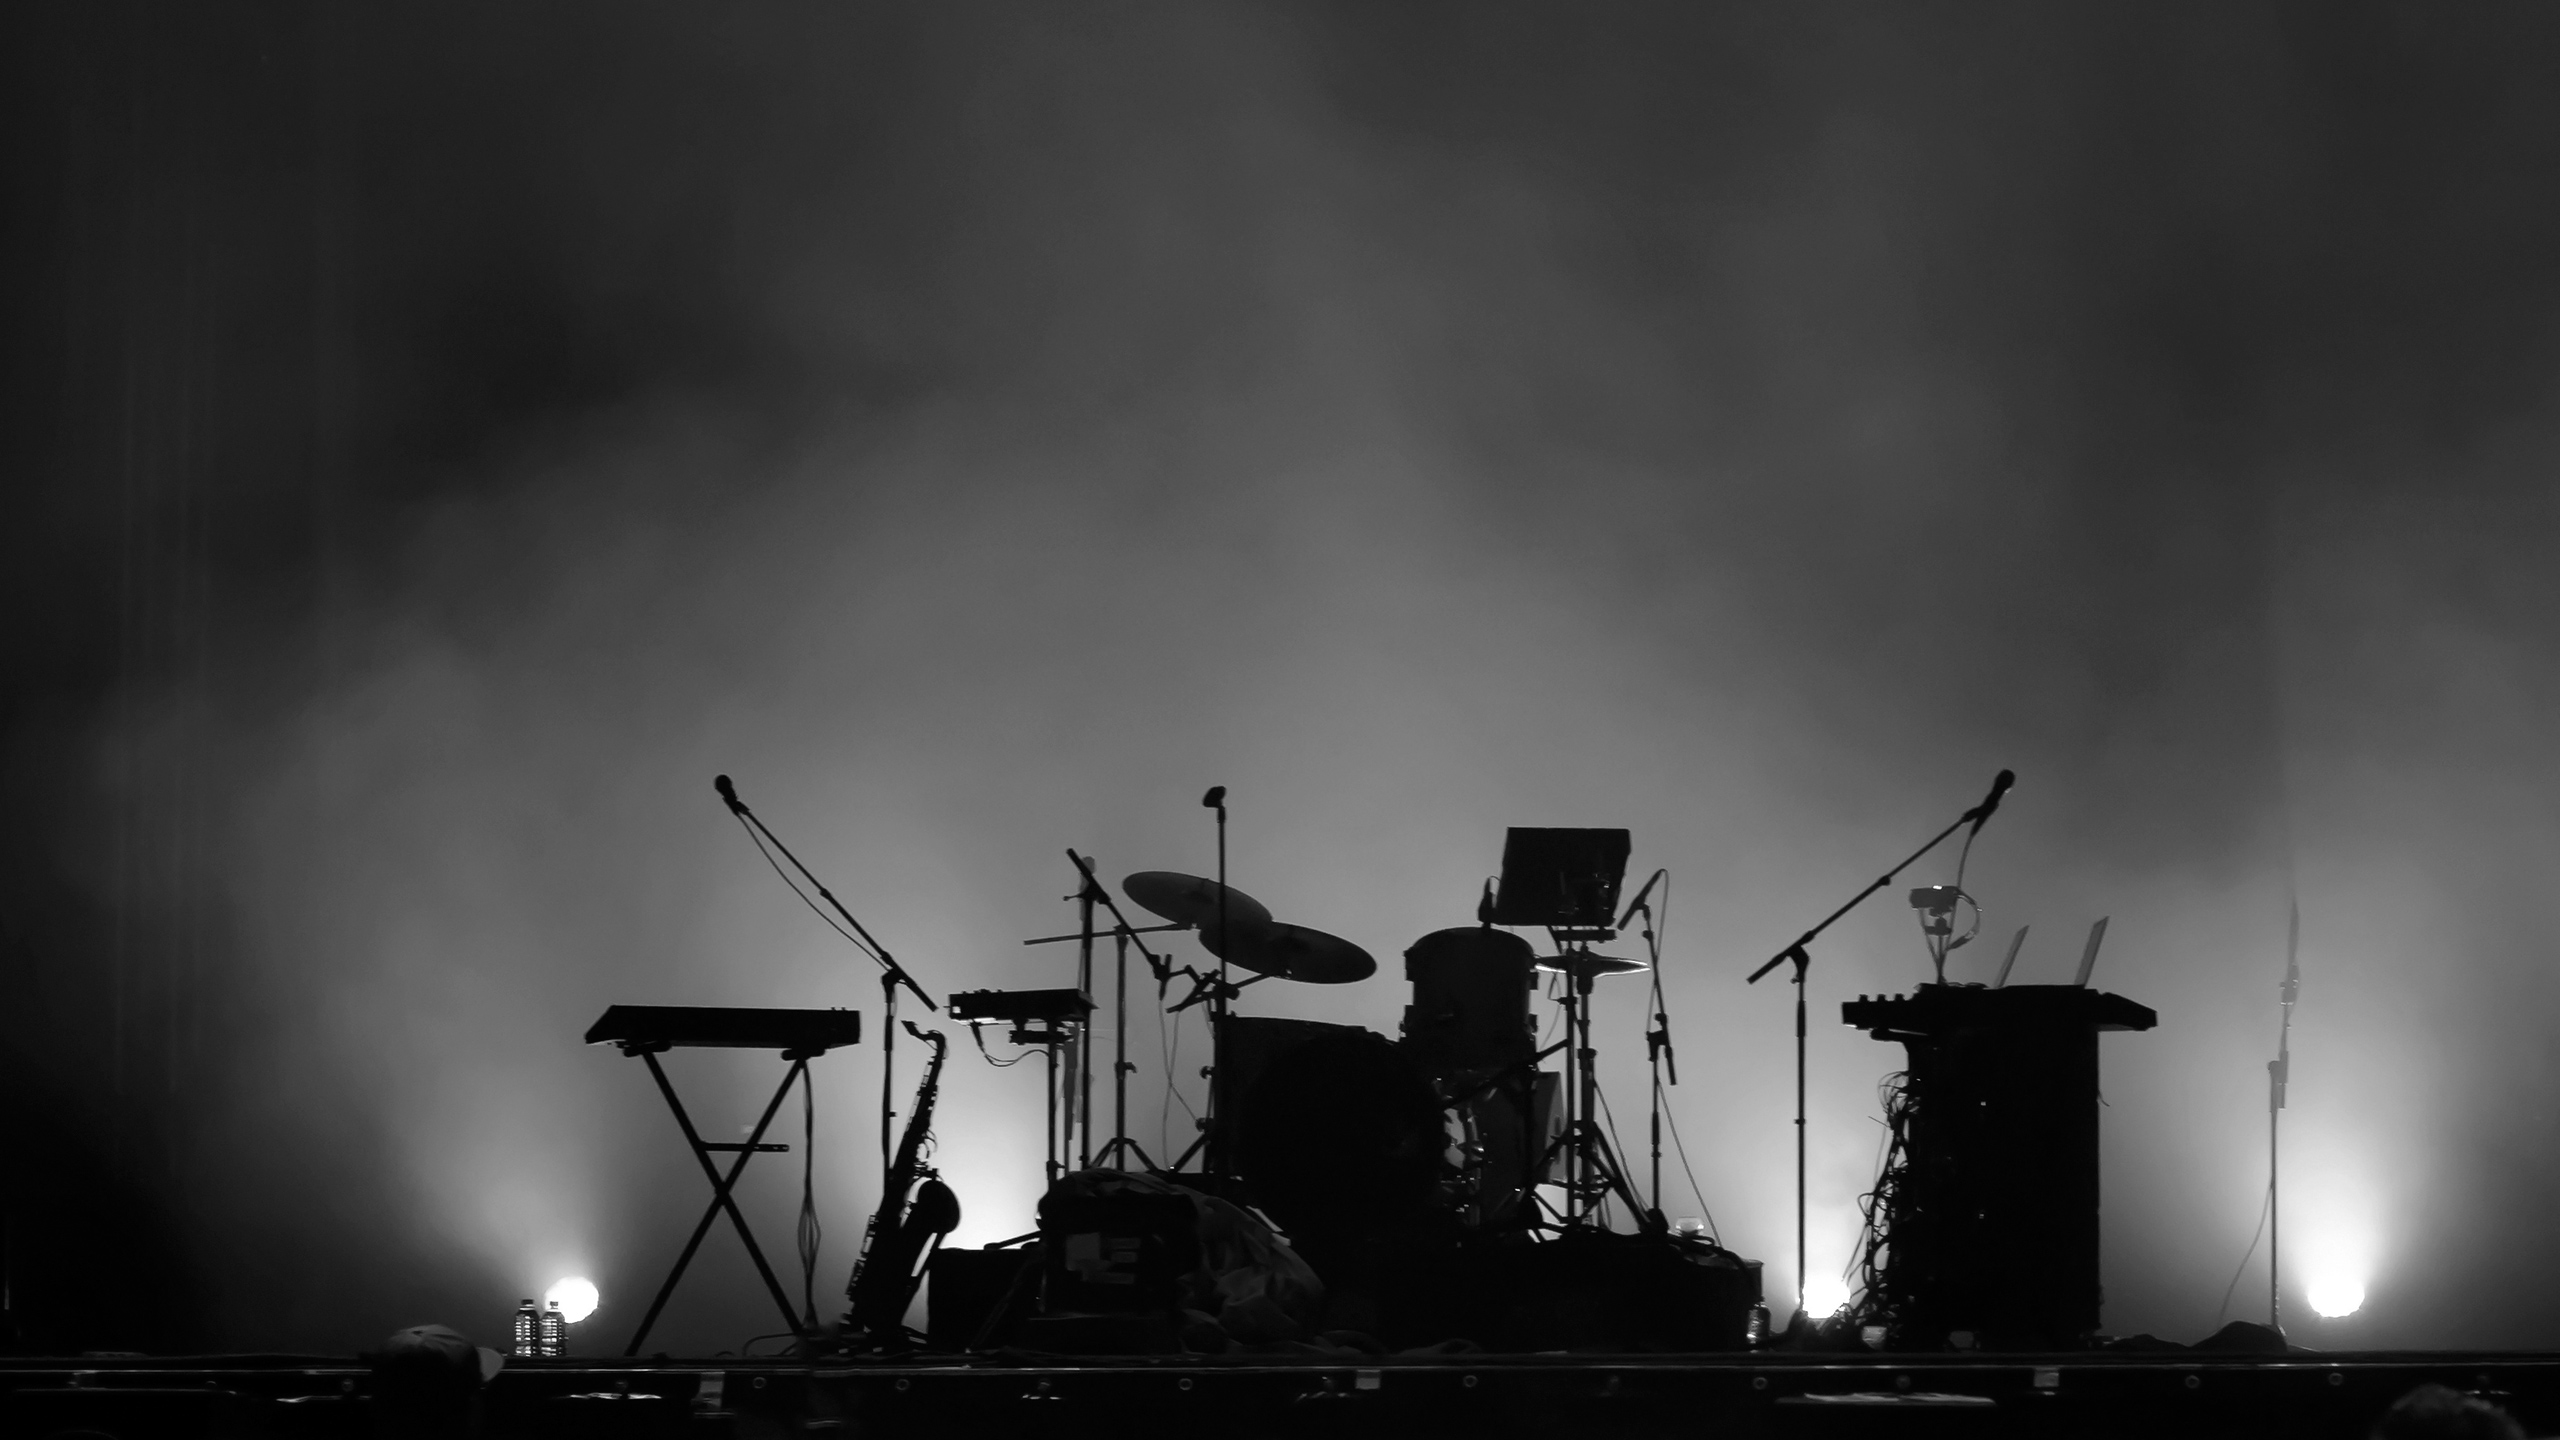 Black & White Photo of Instruments on Stage in Silhouette